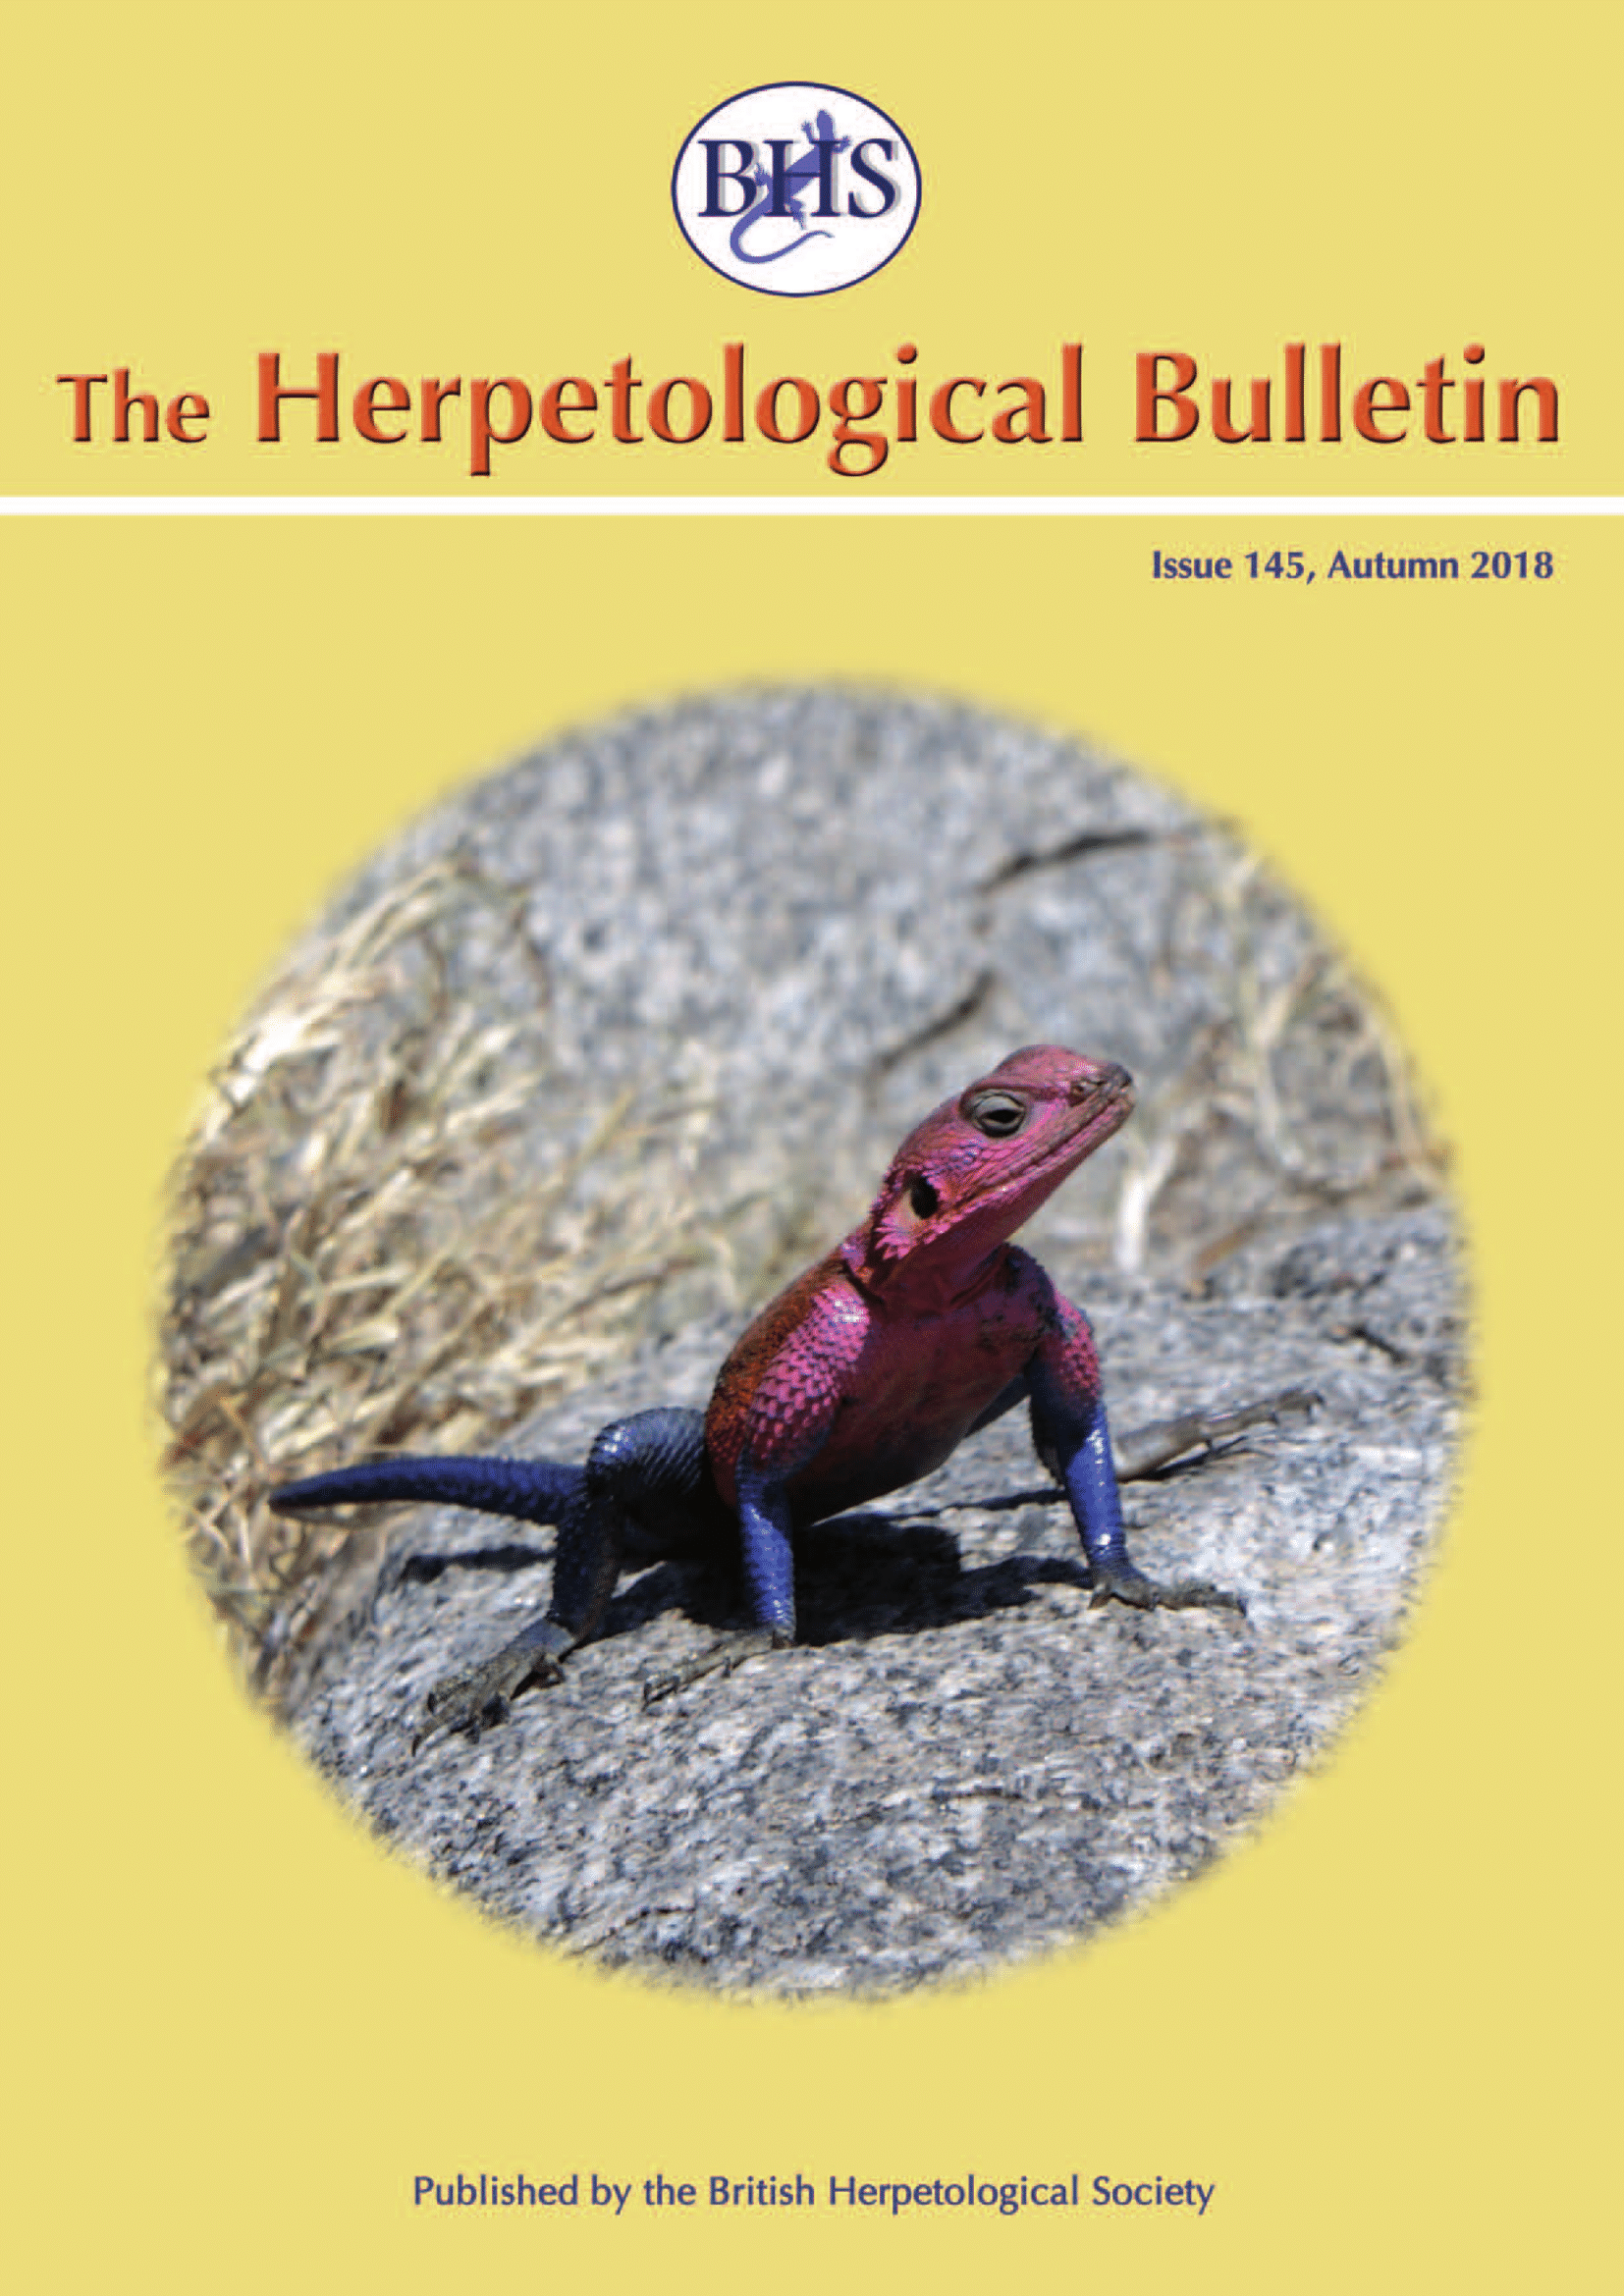 The Herpetological Bulletin Issue 145